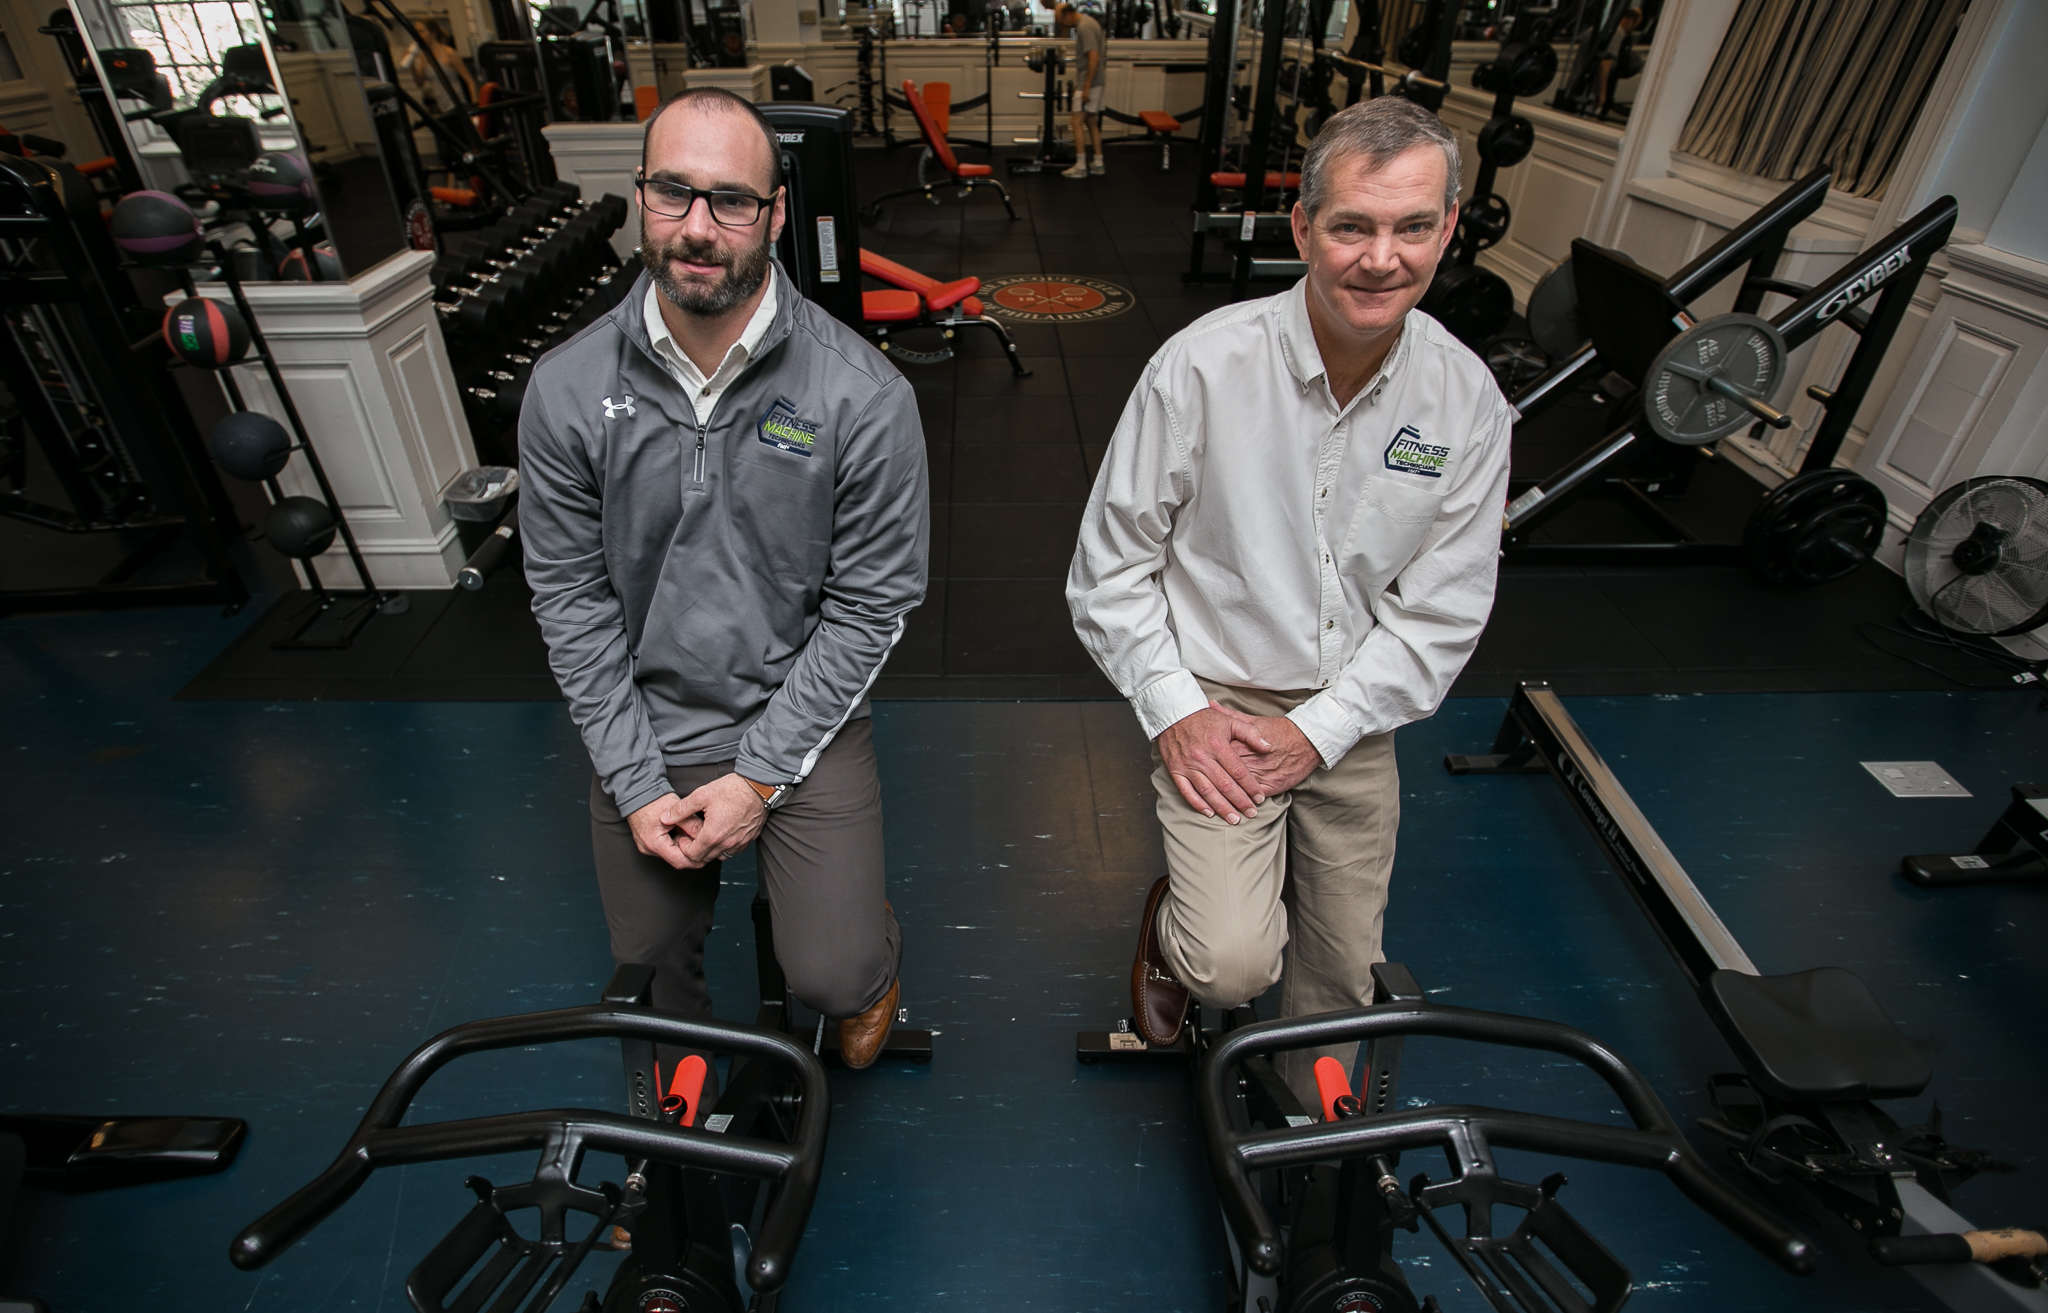 Fitness Machine Technicians founder Don Powers (right) with Andrew Lawrie, a training-facility owner who bought the FMT franchise rights for Berks and Lancaster Counties.